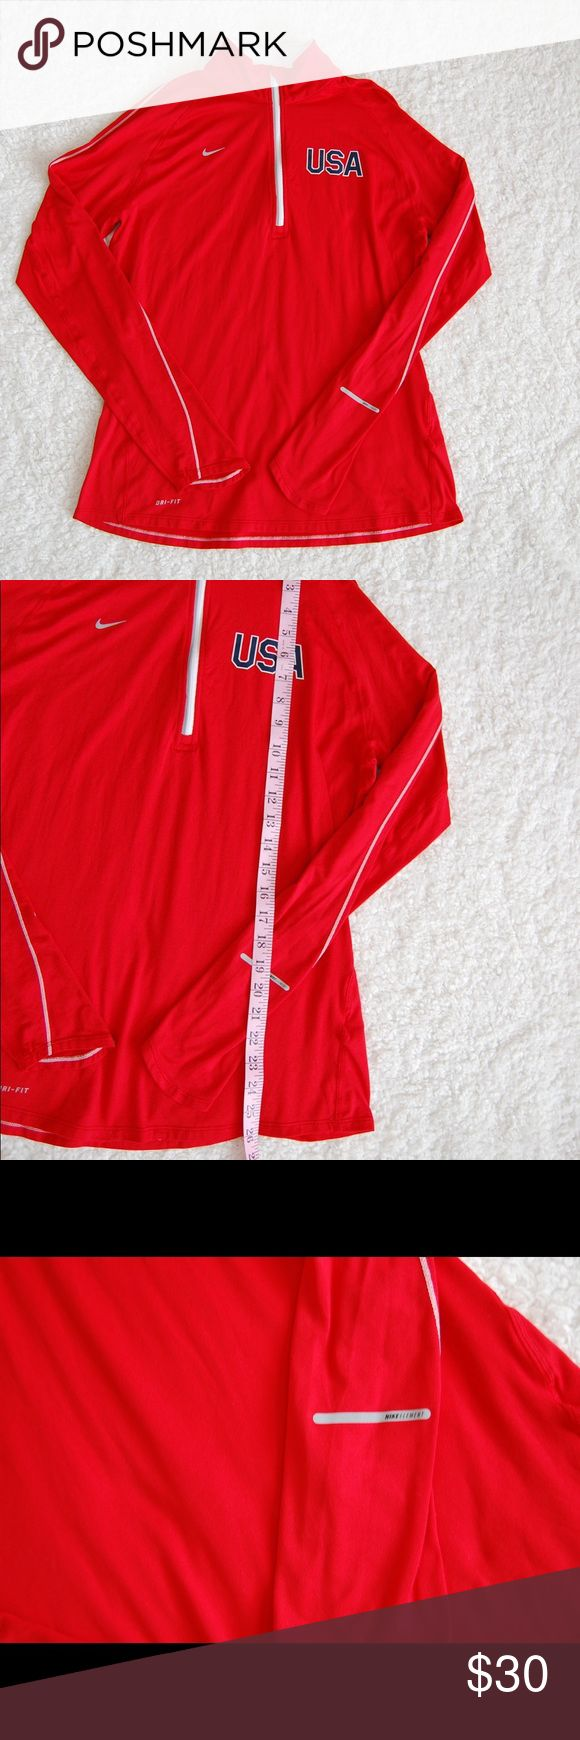 Nike element red Dri Fit Olympic Pullover Sz L Excellent Condition. Measurements shown in photos. Nike Tops Sweatshirts & Hoodies